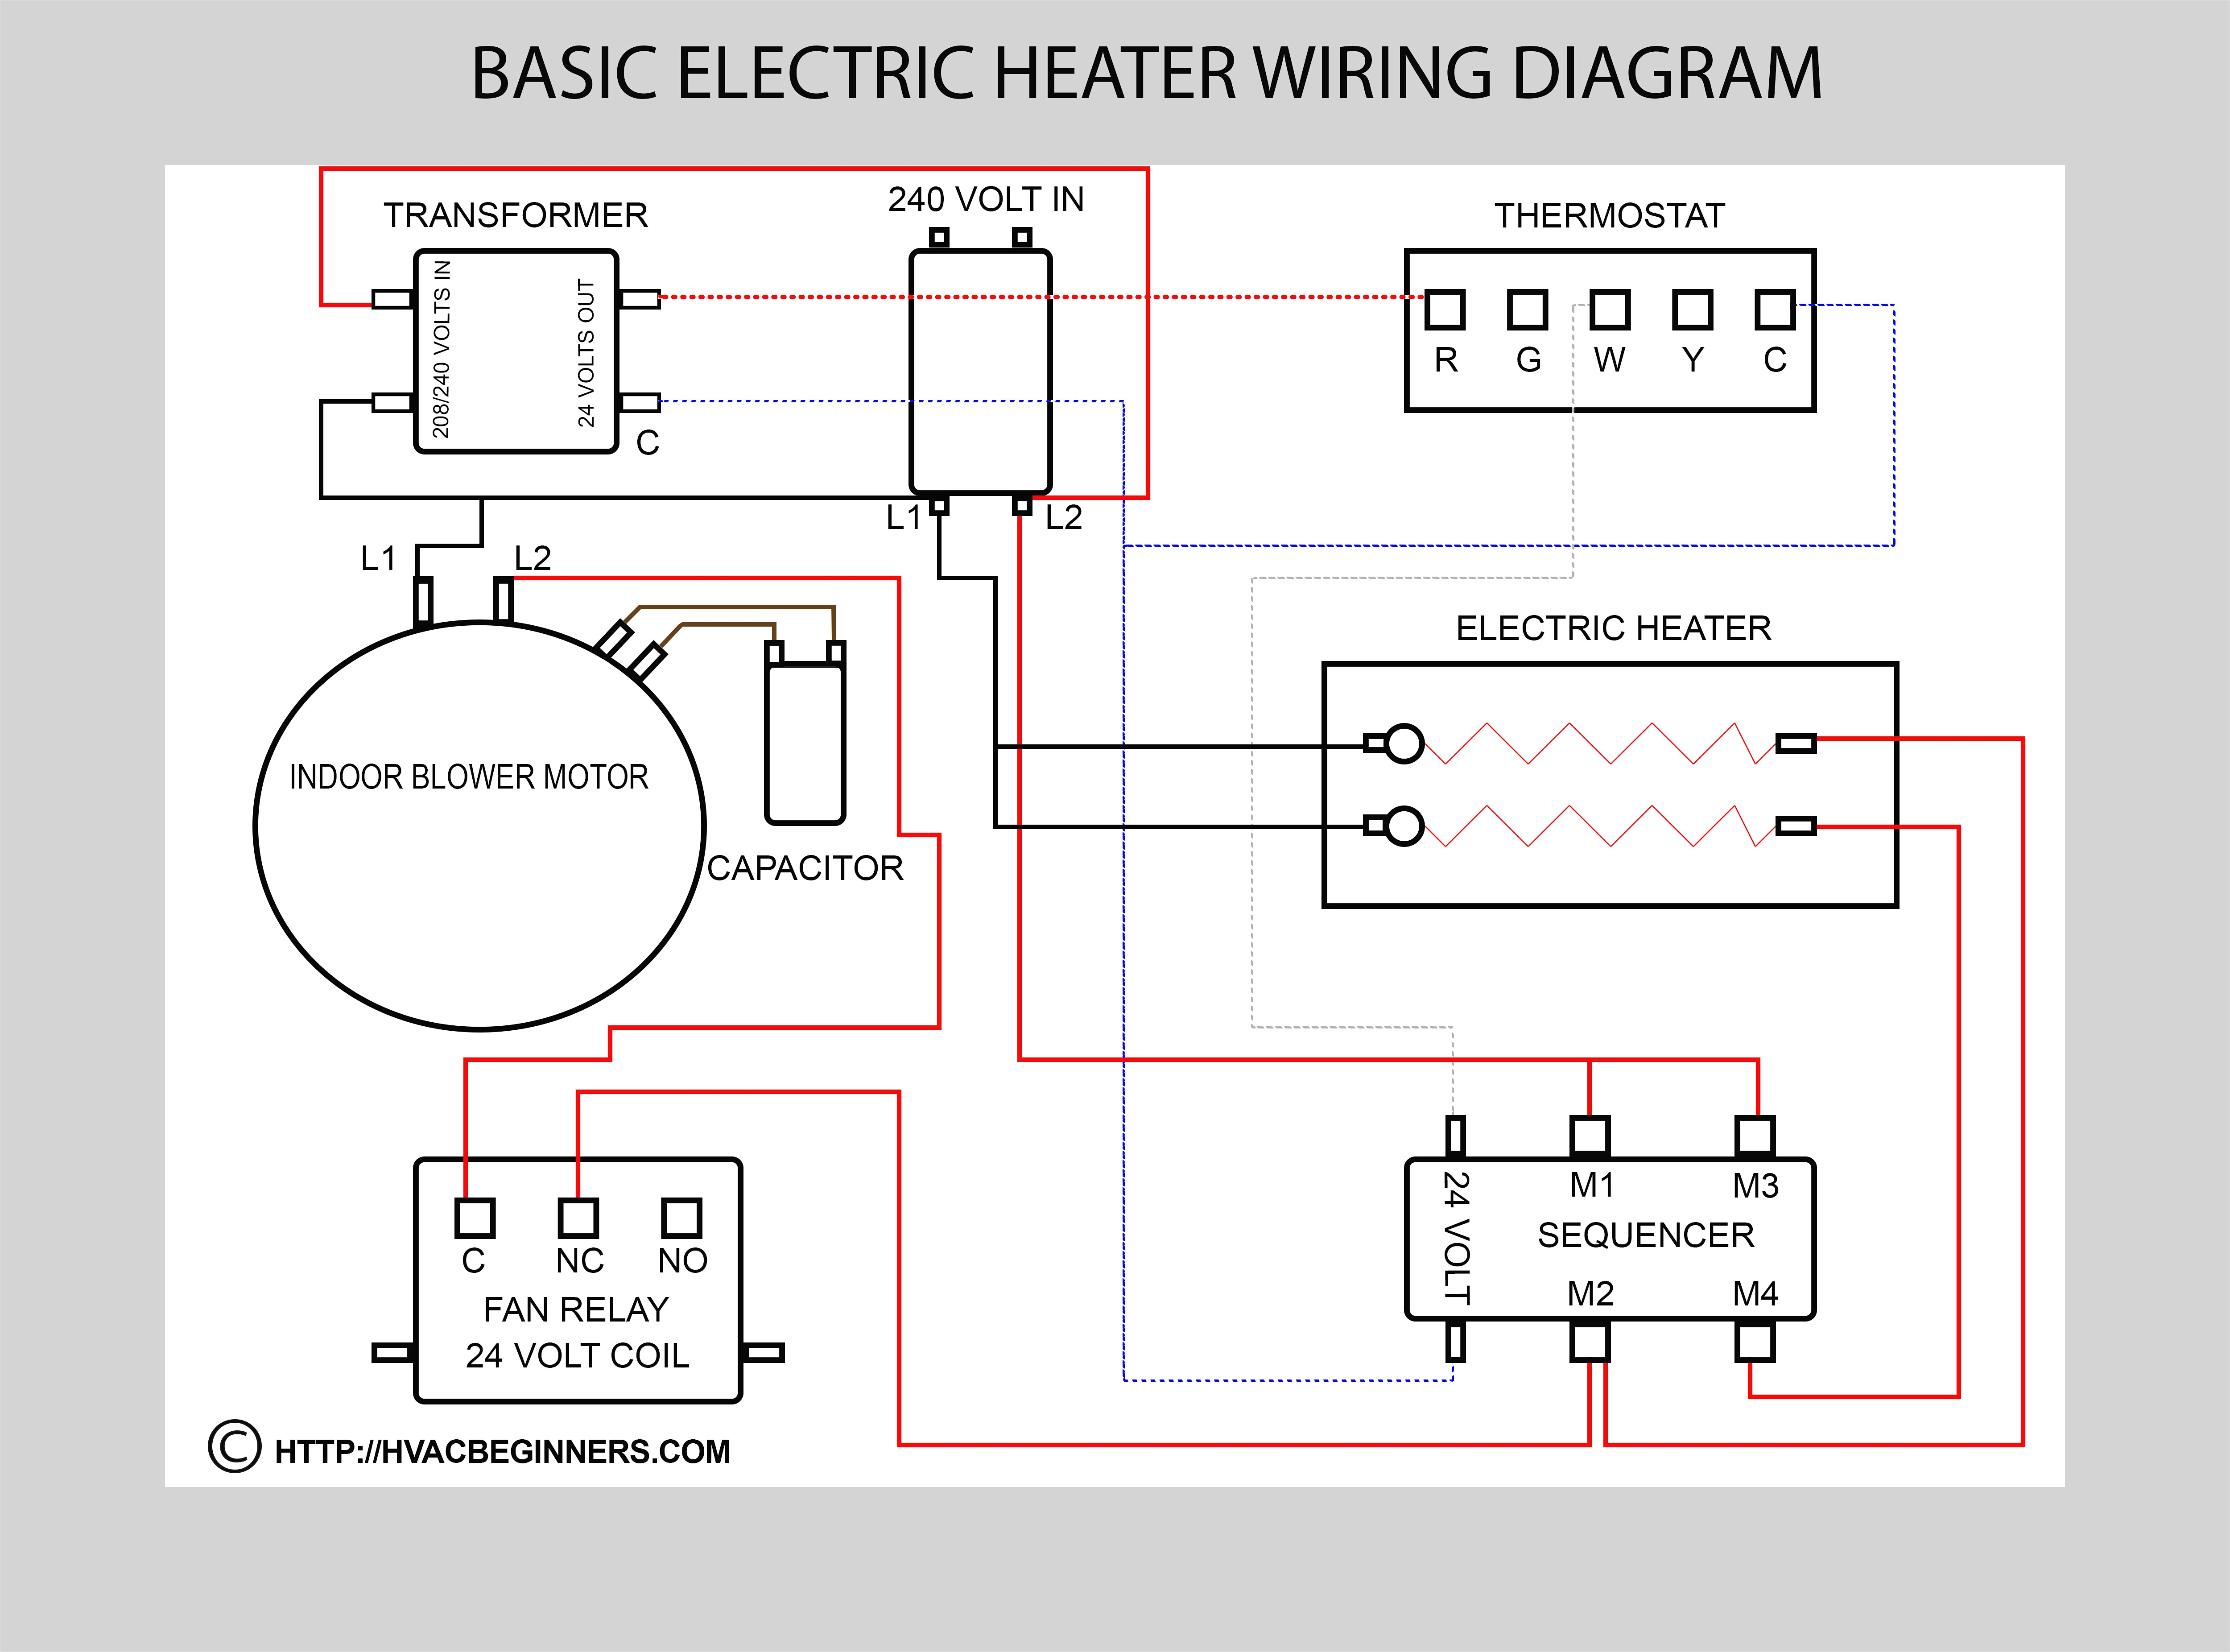 York Air Handler Wiring Diagram | Manual E-Books - York Air Handler Wiring Diagram